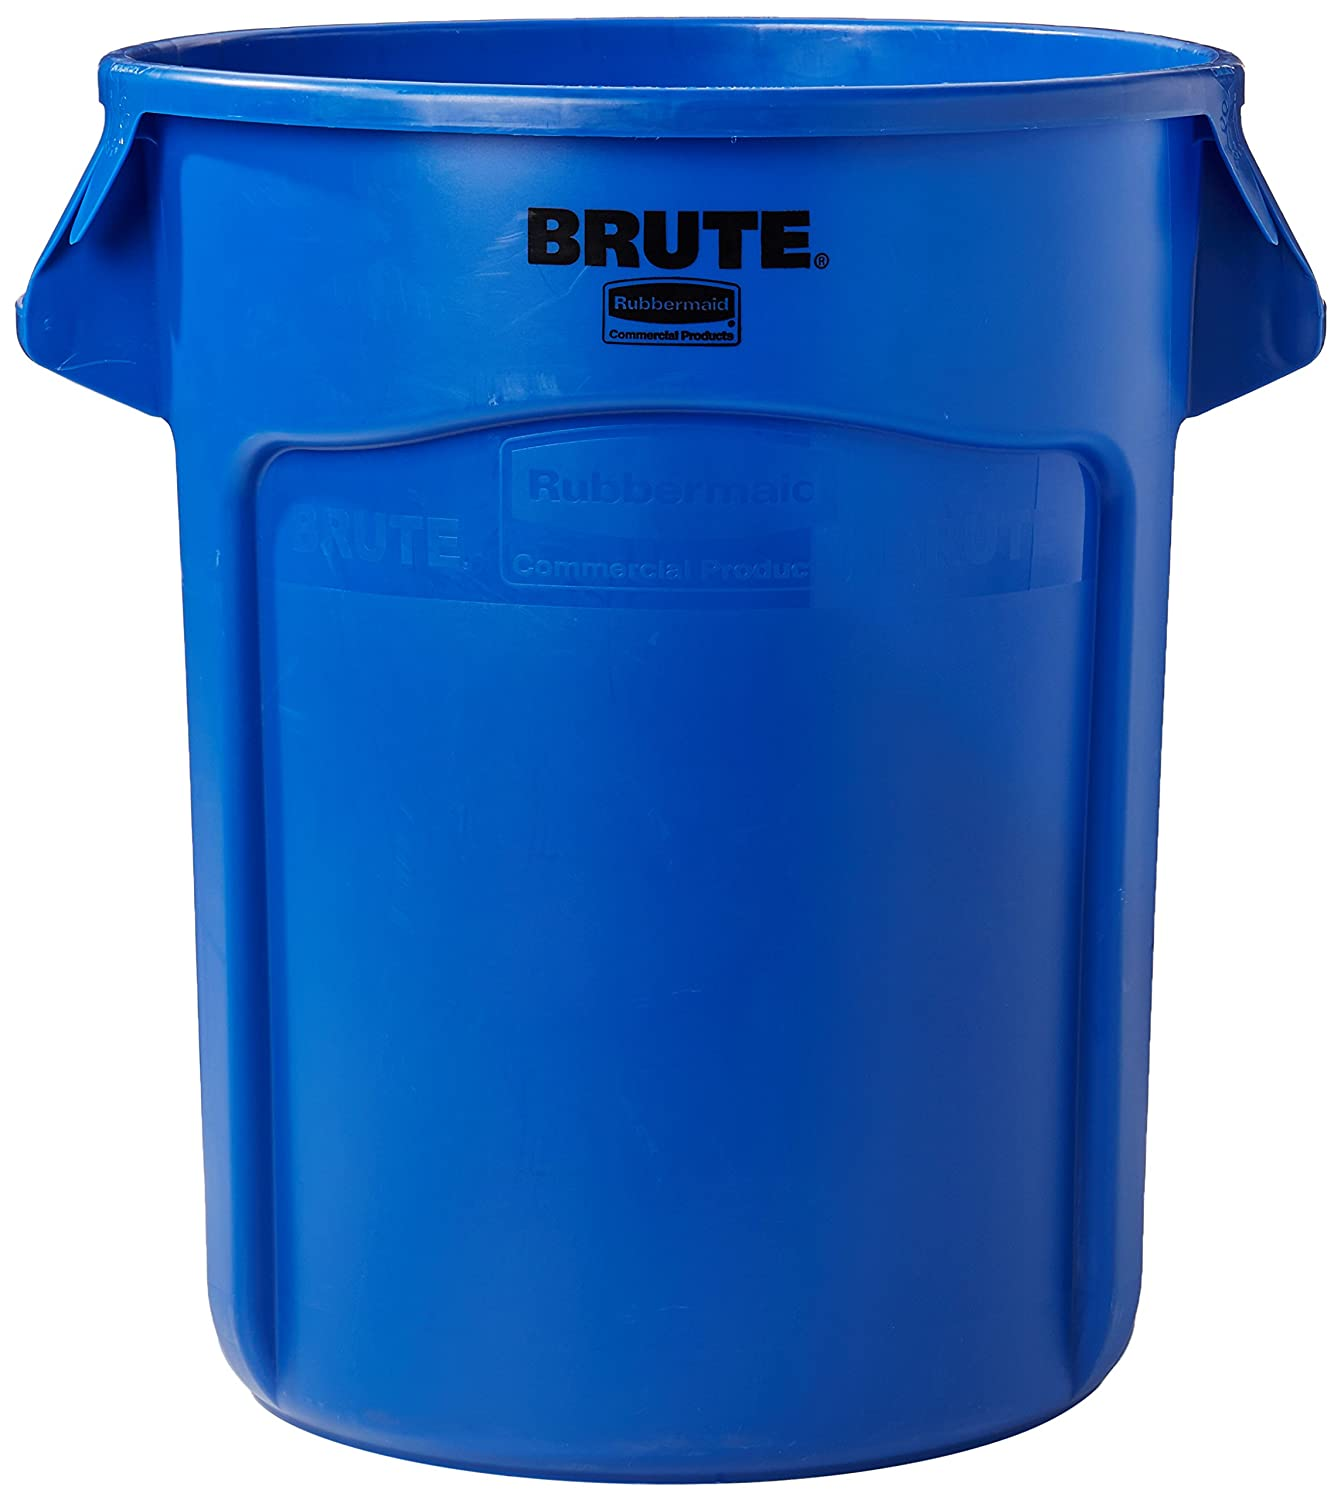 Rubbermaid Commercial FG262000BLUE BRUTE Heavy-Duty Round Waste/Utility Container, 20-gallon, Blue